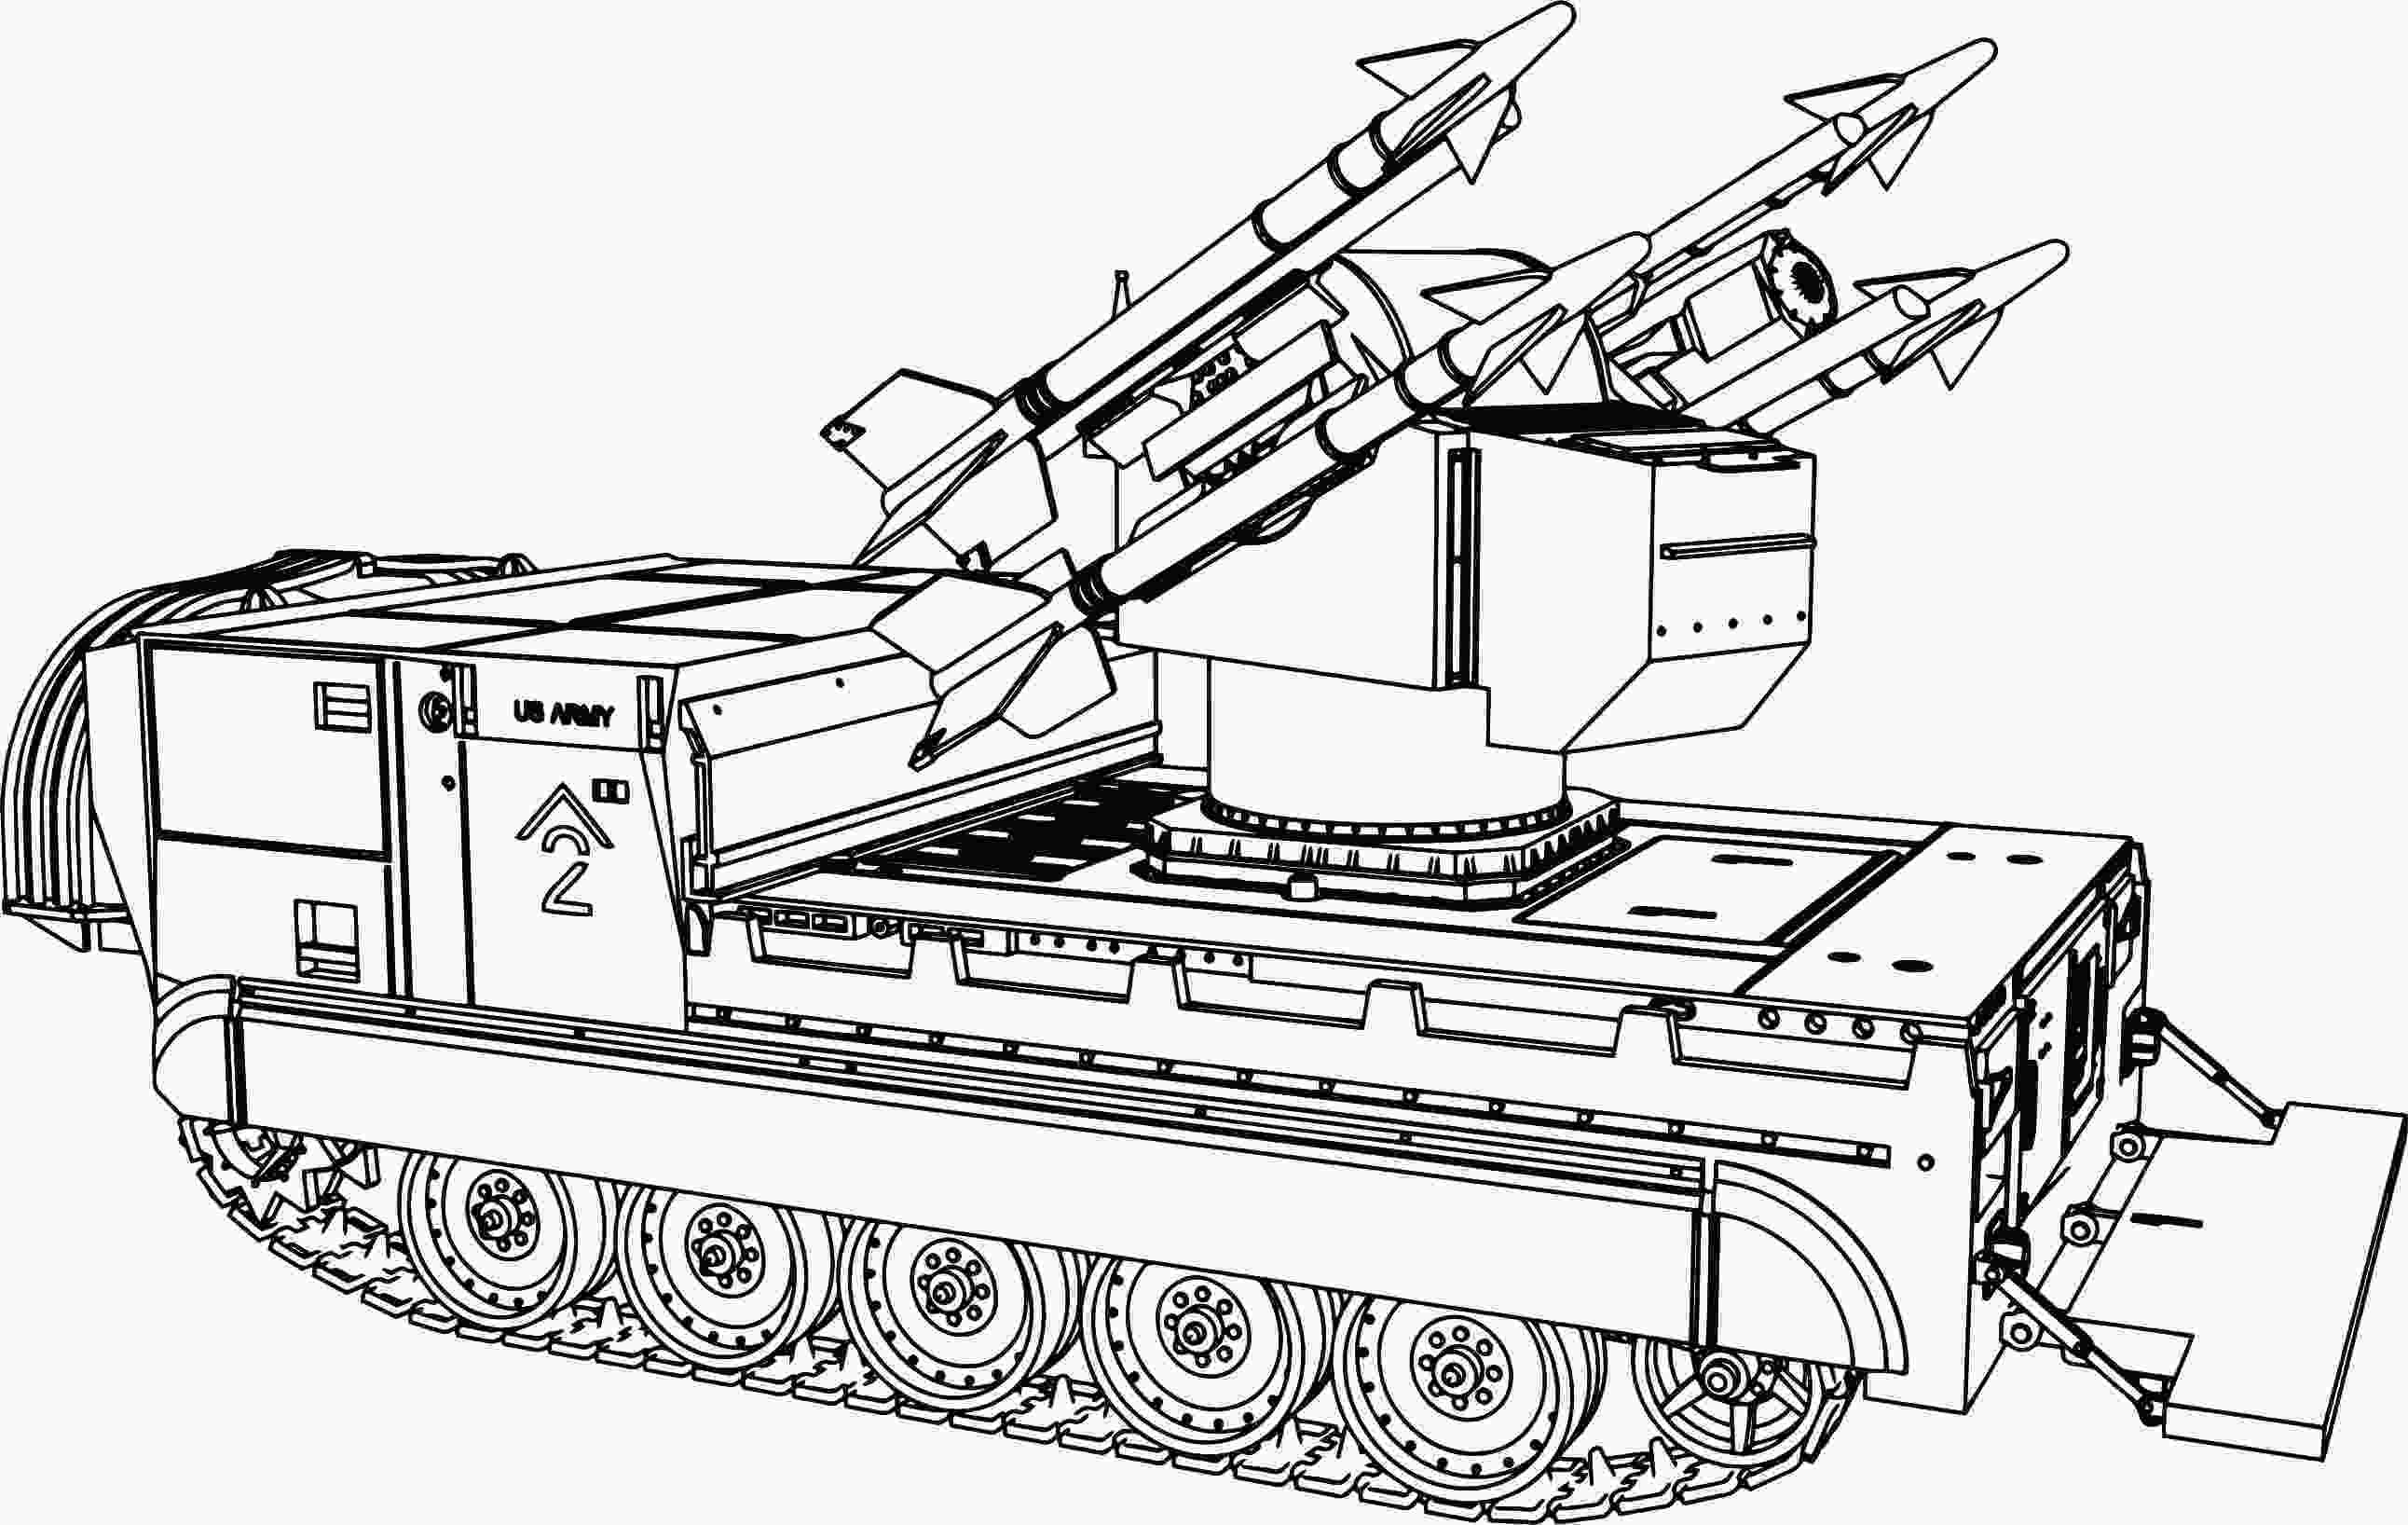 army tanks coloring pages army tank coloring page free printable coloring pages tanks army pages coloring